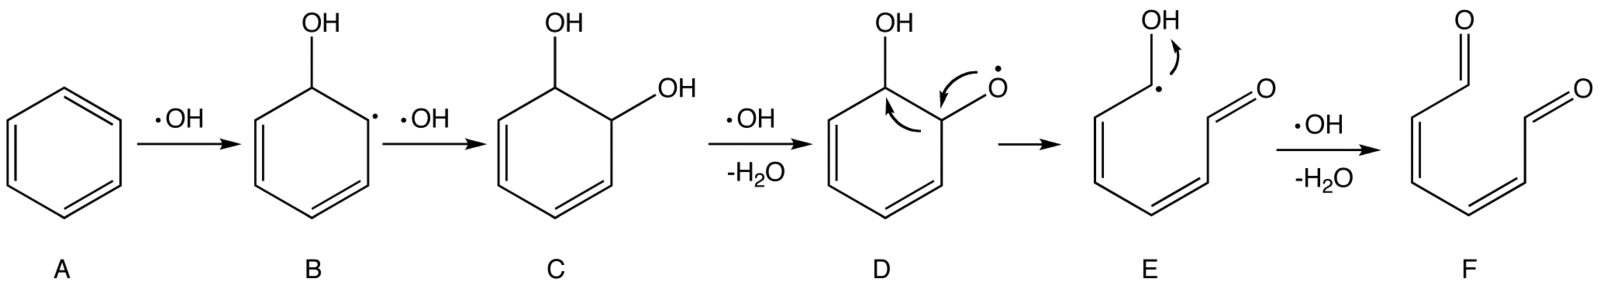 Oxidation Ozone Mechanism Mechanism of The Oxidation